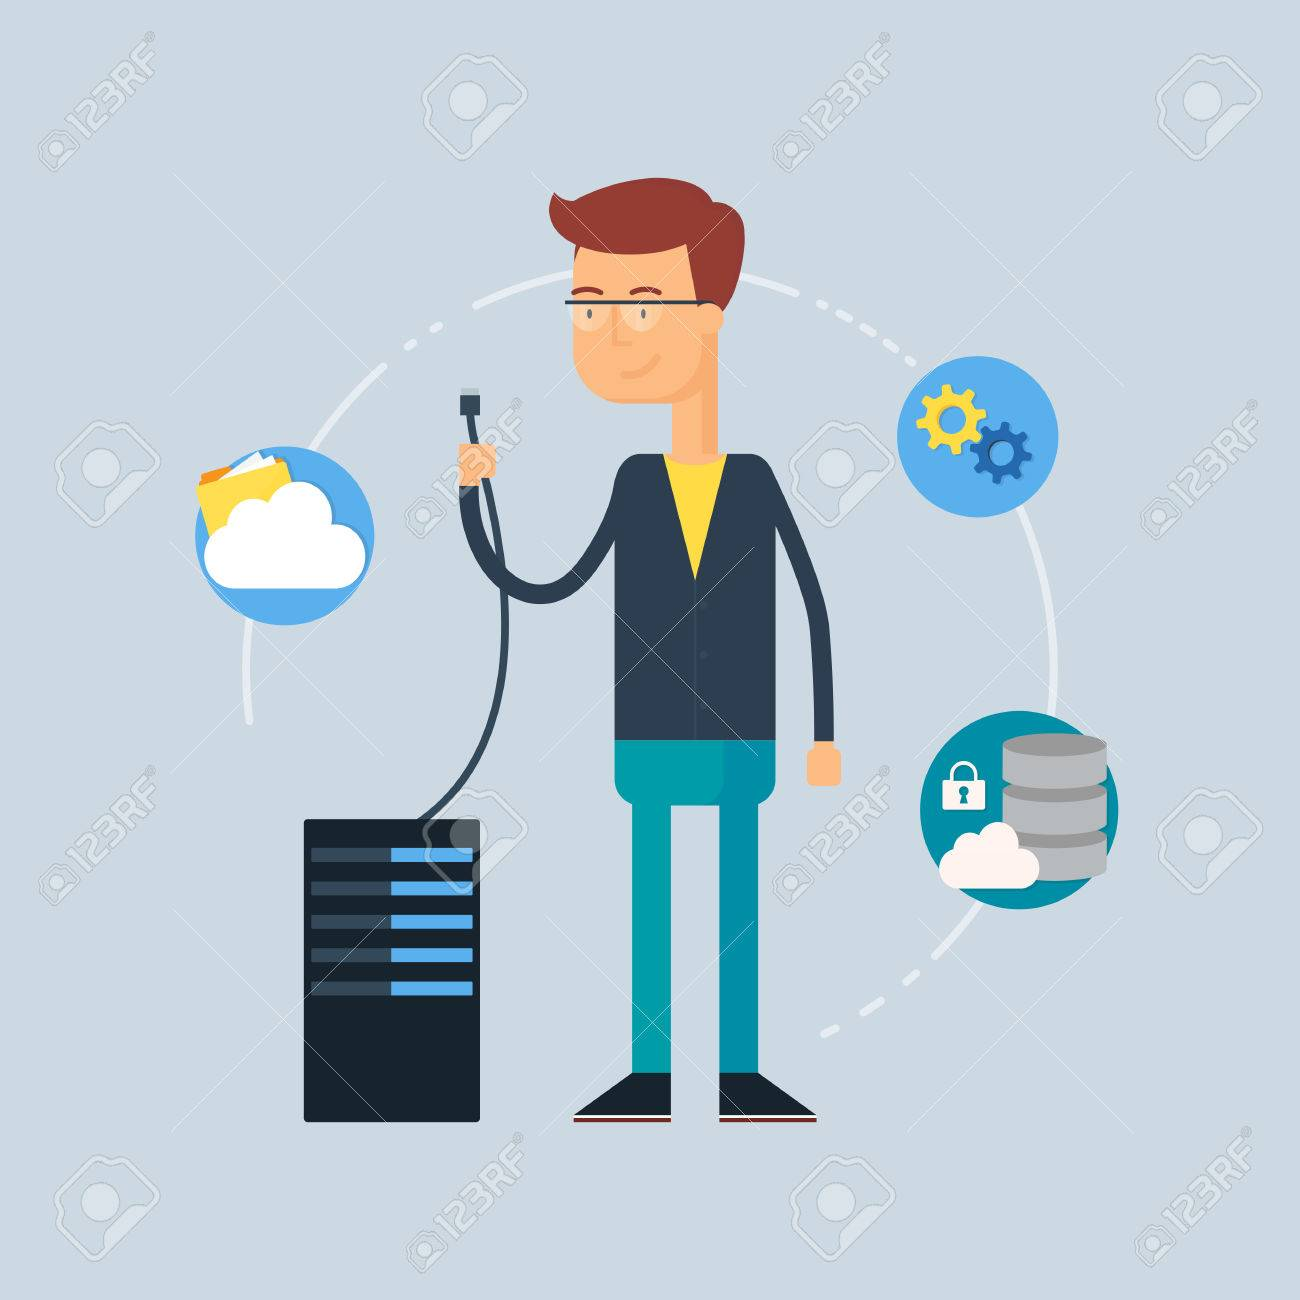 Administrator - Administrator character system administrator vector illustration flat style illustration